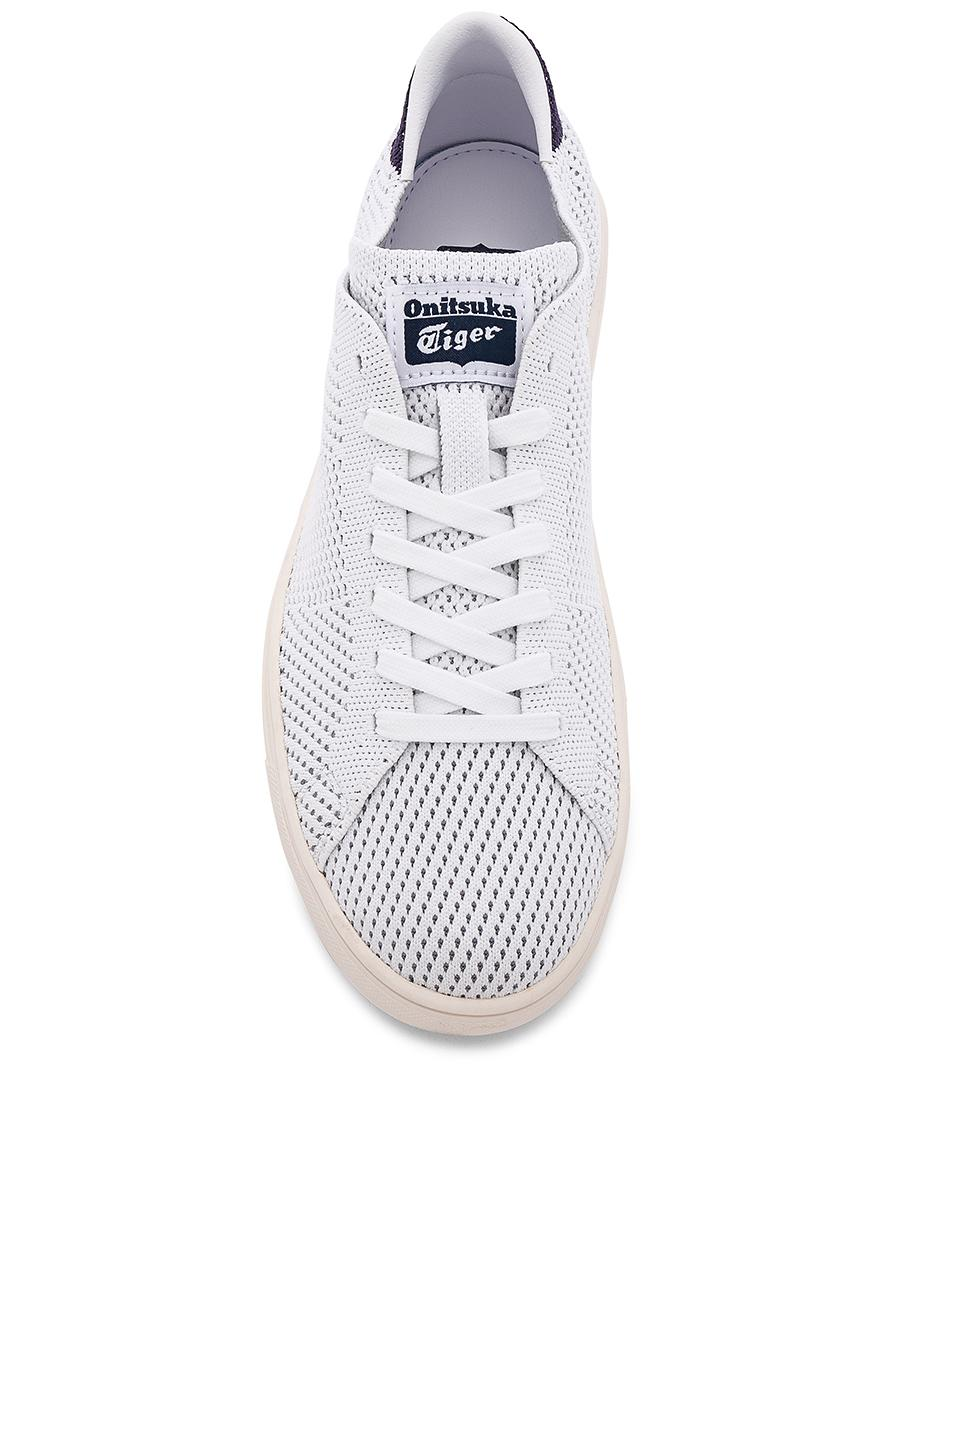 cheap for discount 479f3 73c87 Onitsuka Tiger White Lawnship 2.0 Knit for men